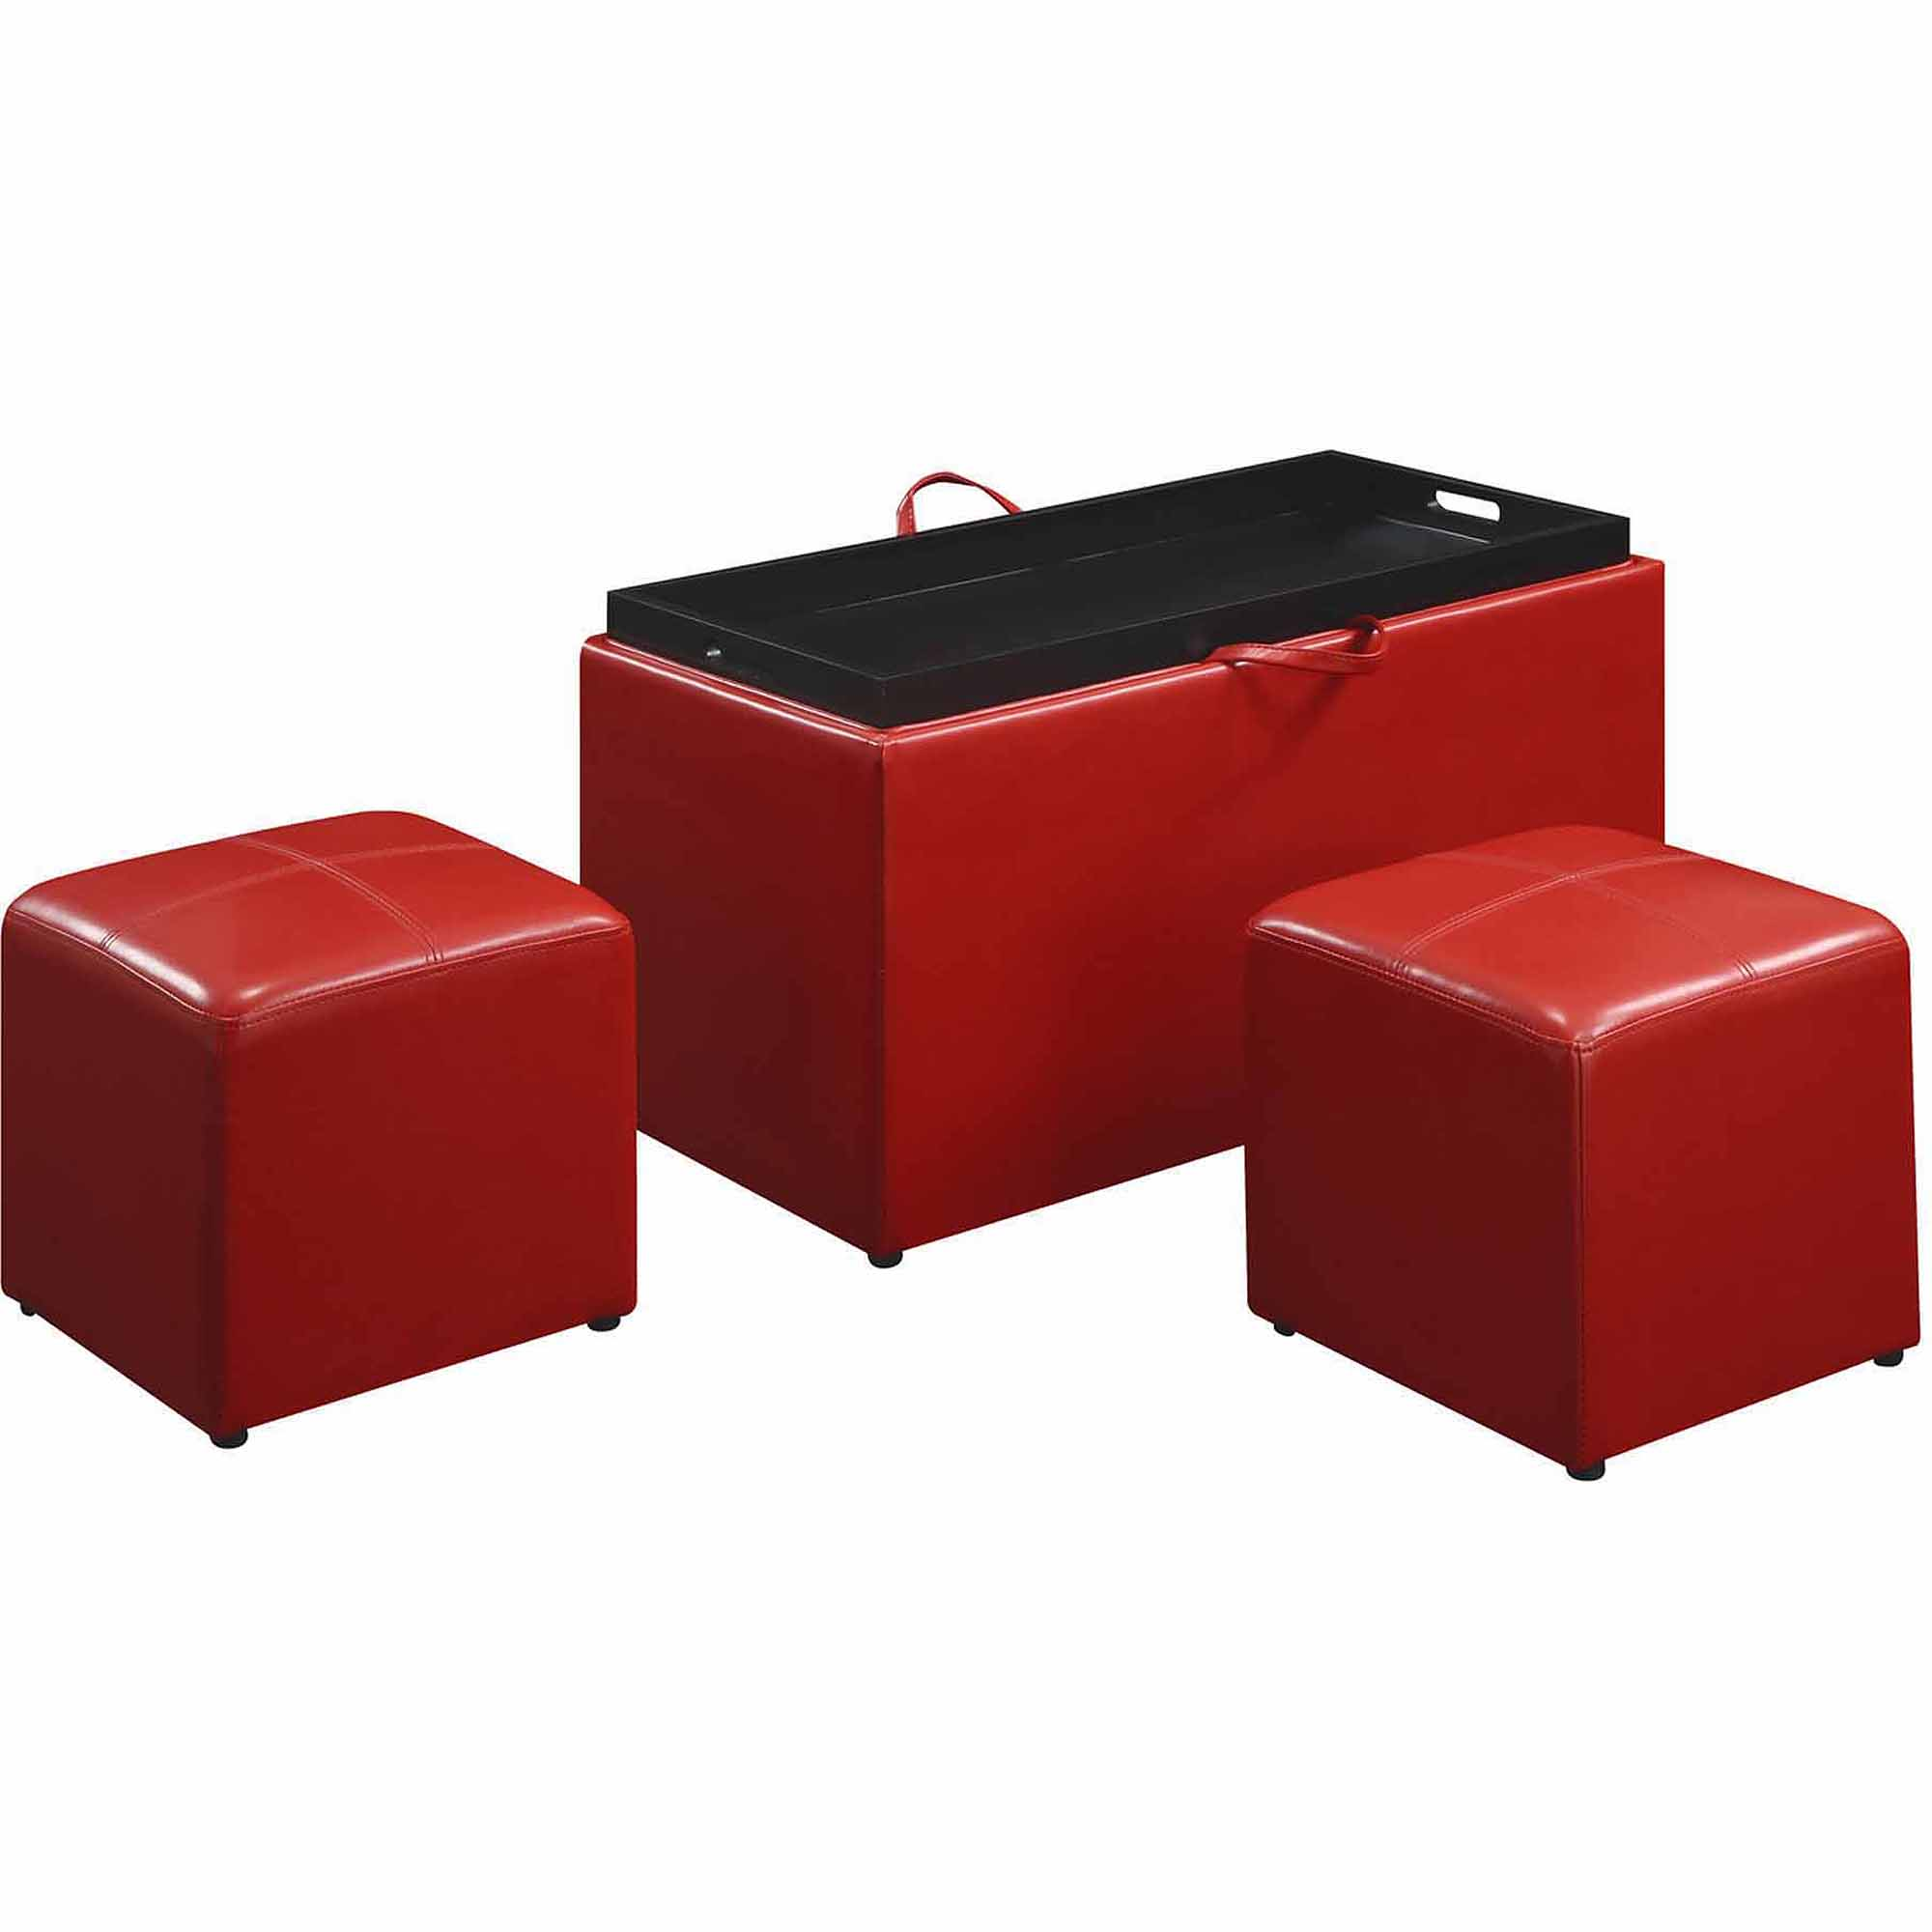 faux leather storage bench with 2 side ottomans multiple colors walmartcom